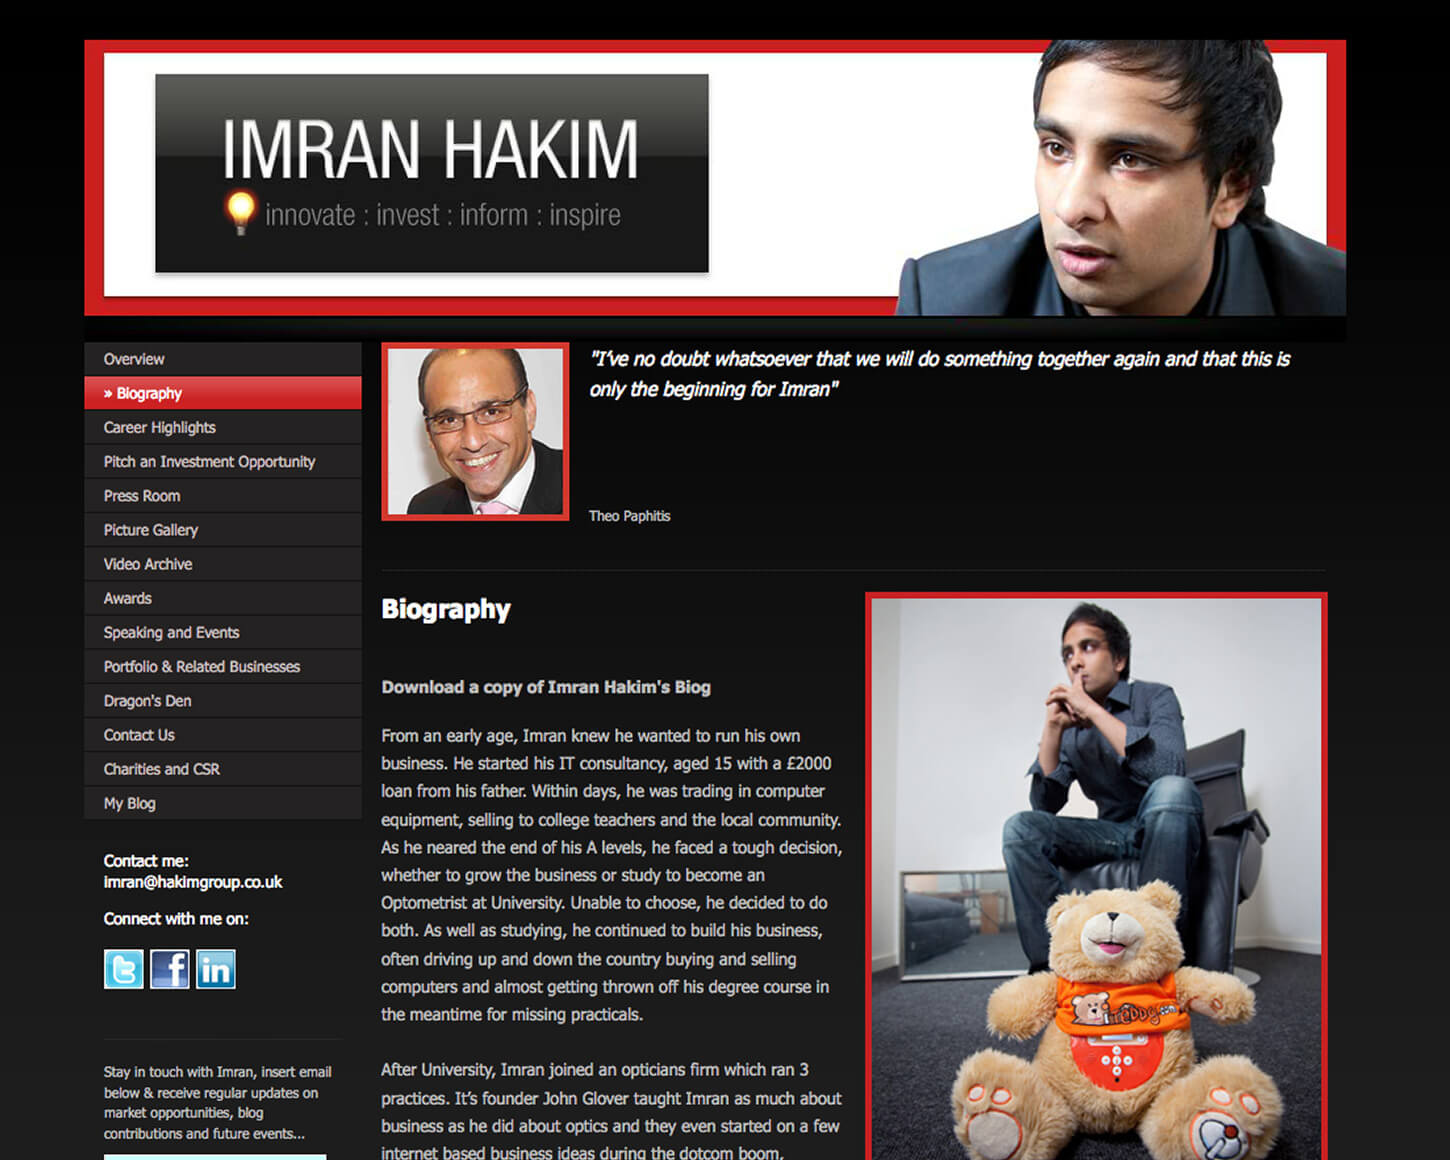 Imran Hakim website